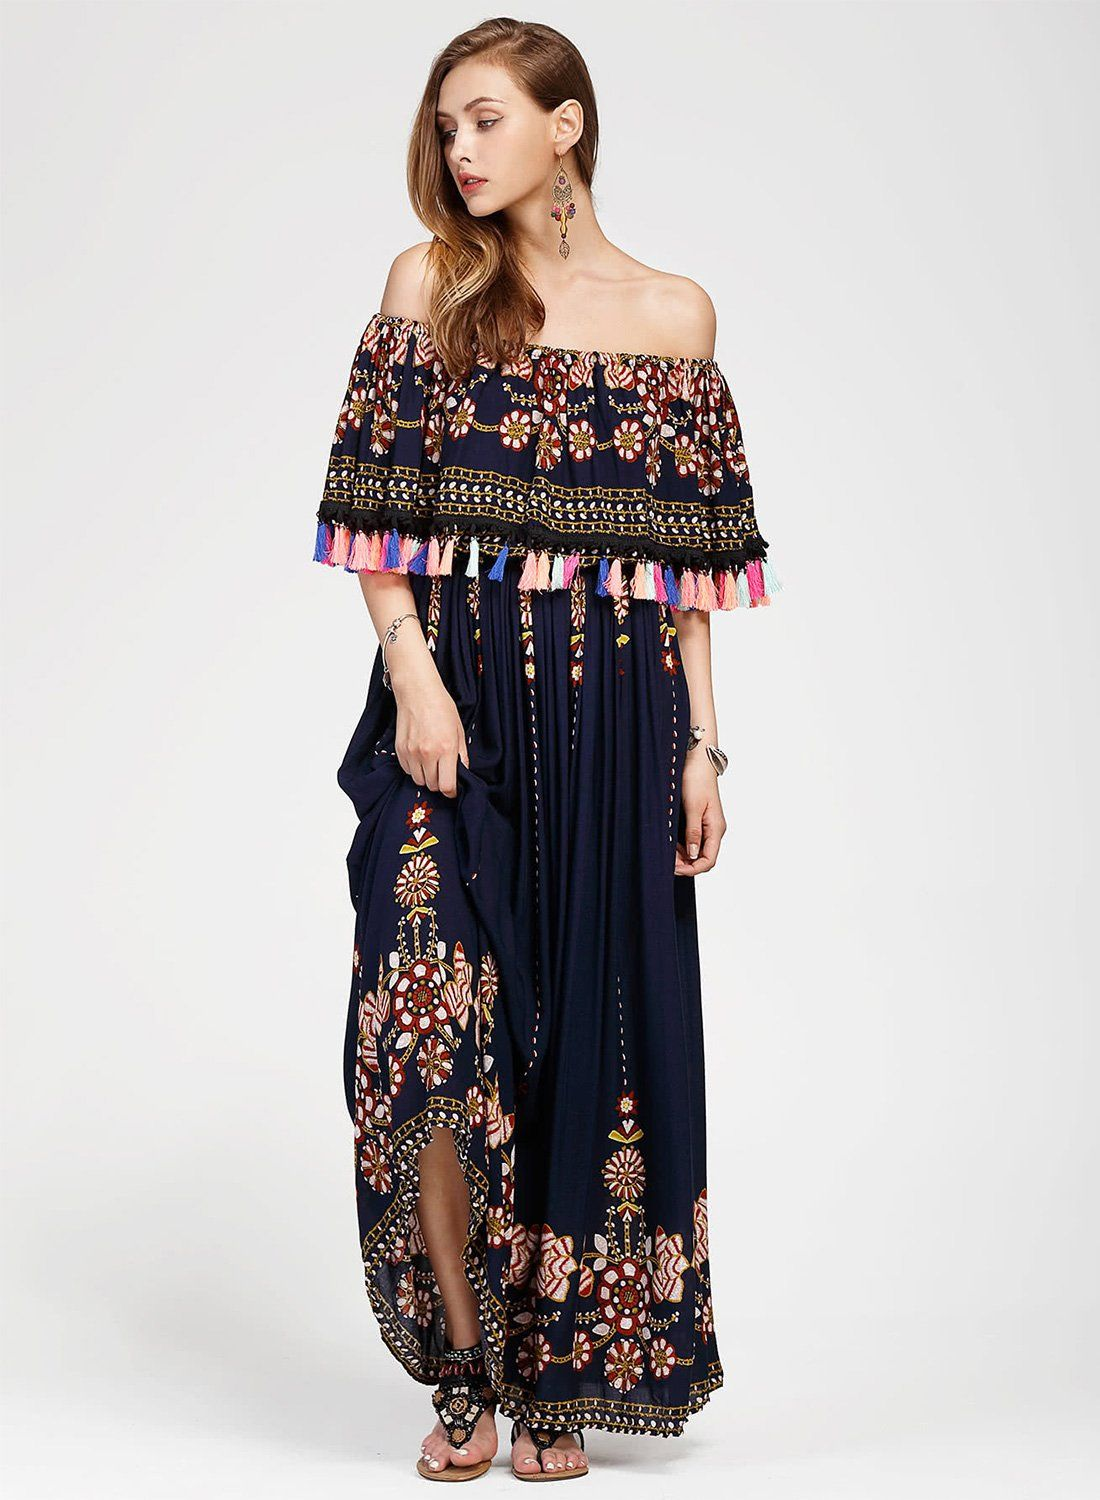 9b89ae8a94c Women s Fashion Boho Floral off Shoulder Maxi Dress